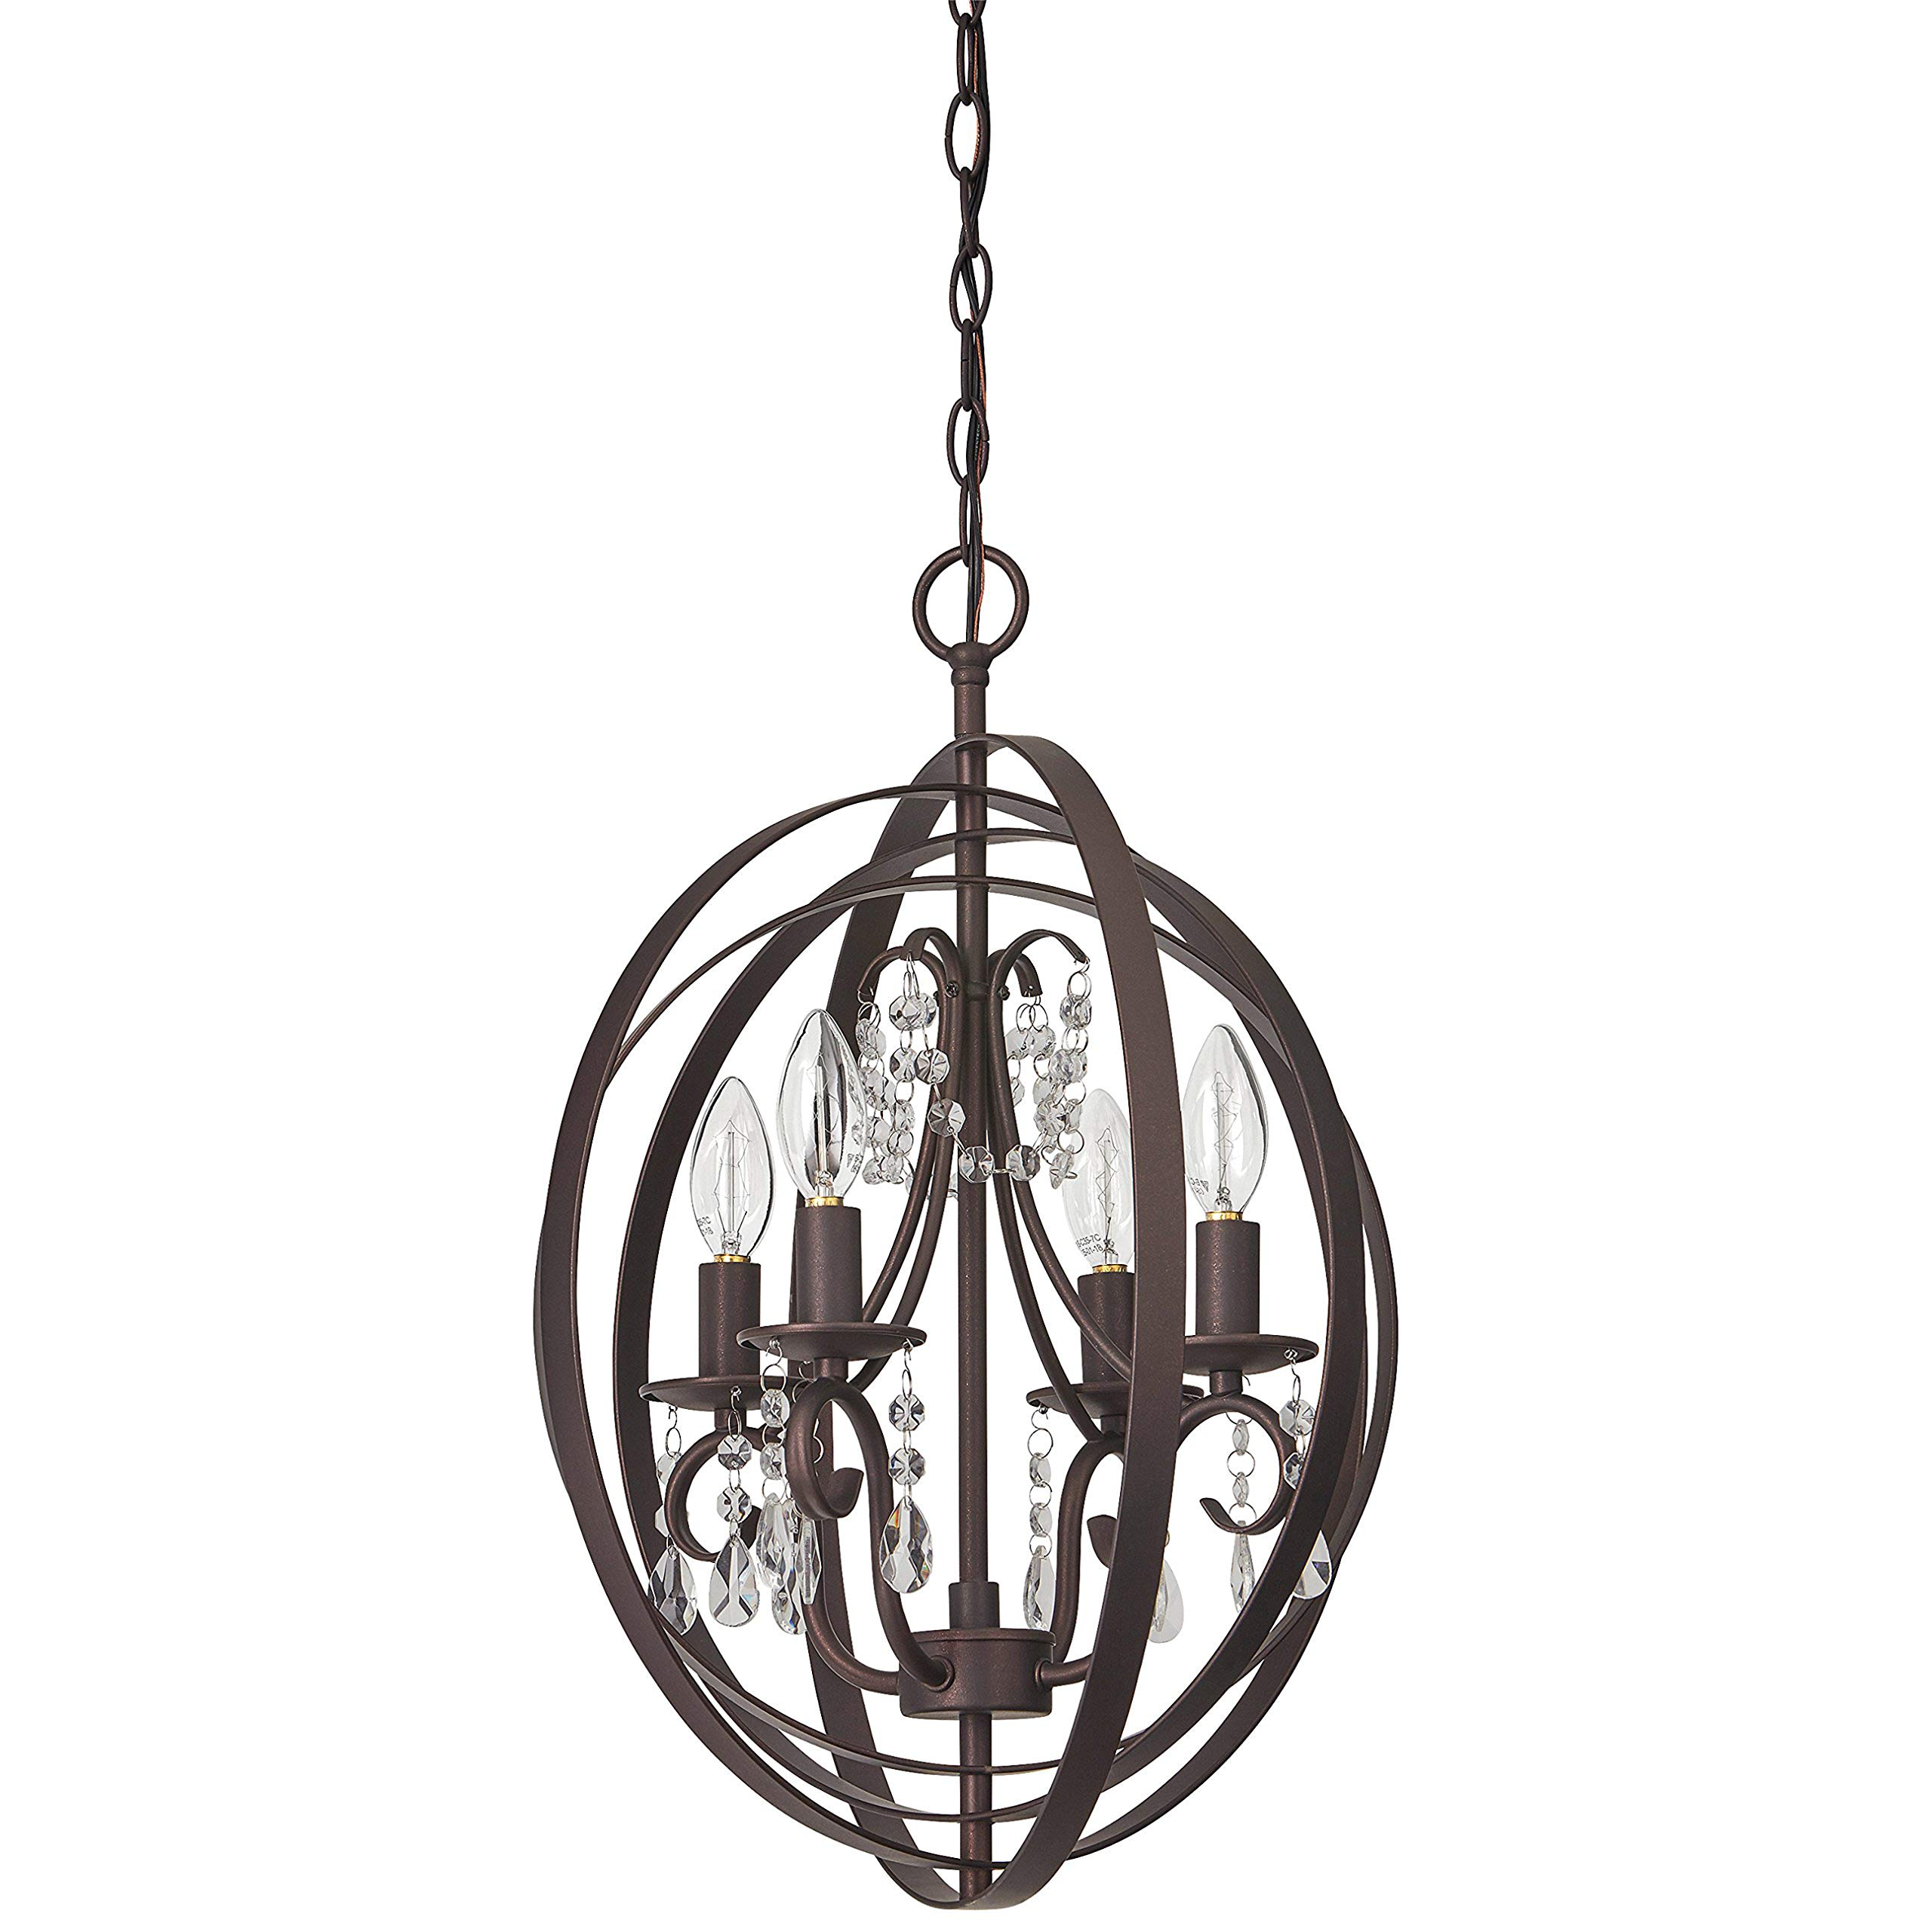 Stone & Beam French Country Orb Chandelier, 21''H, With Bulb, Oil Rubbed Bronze